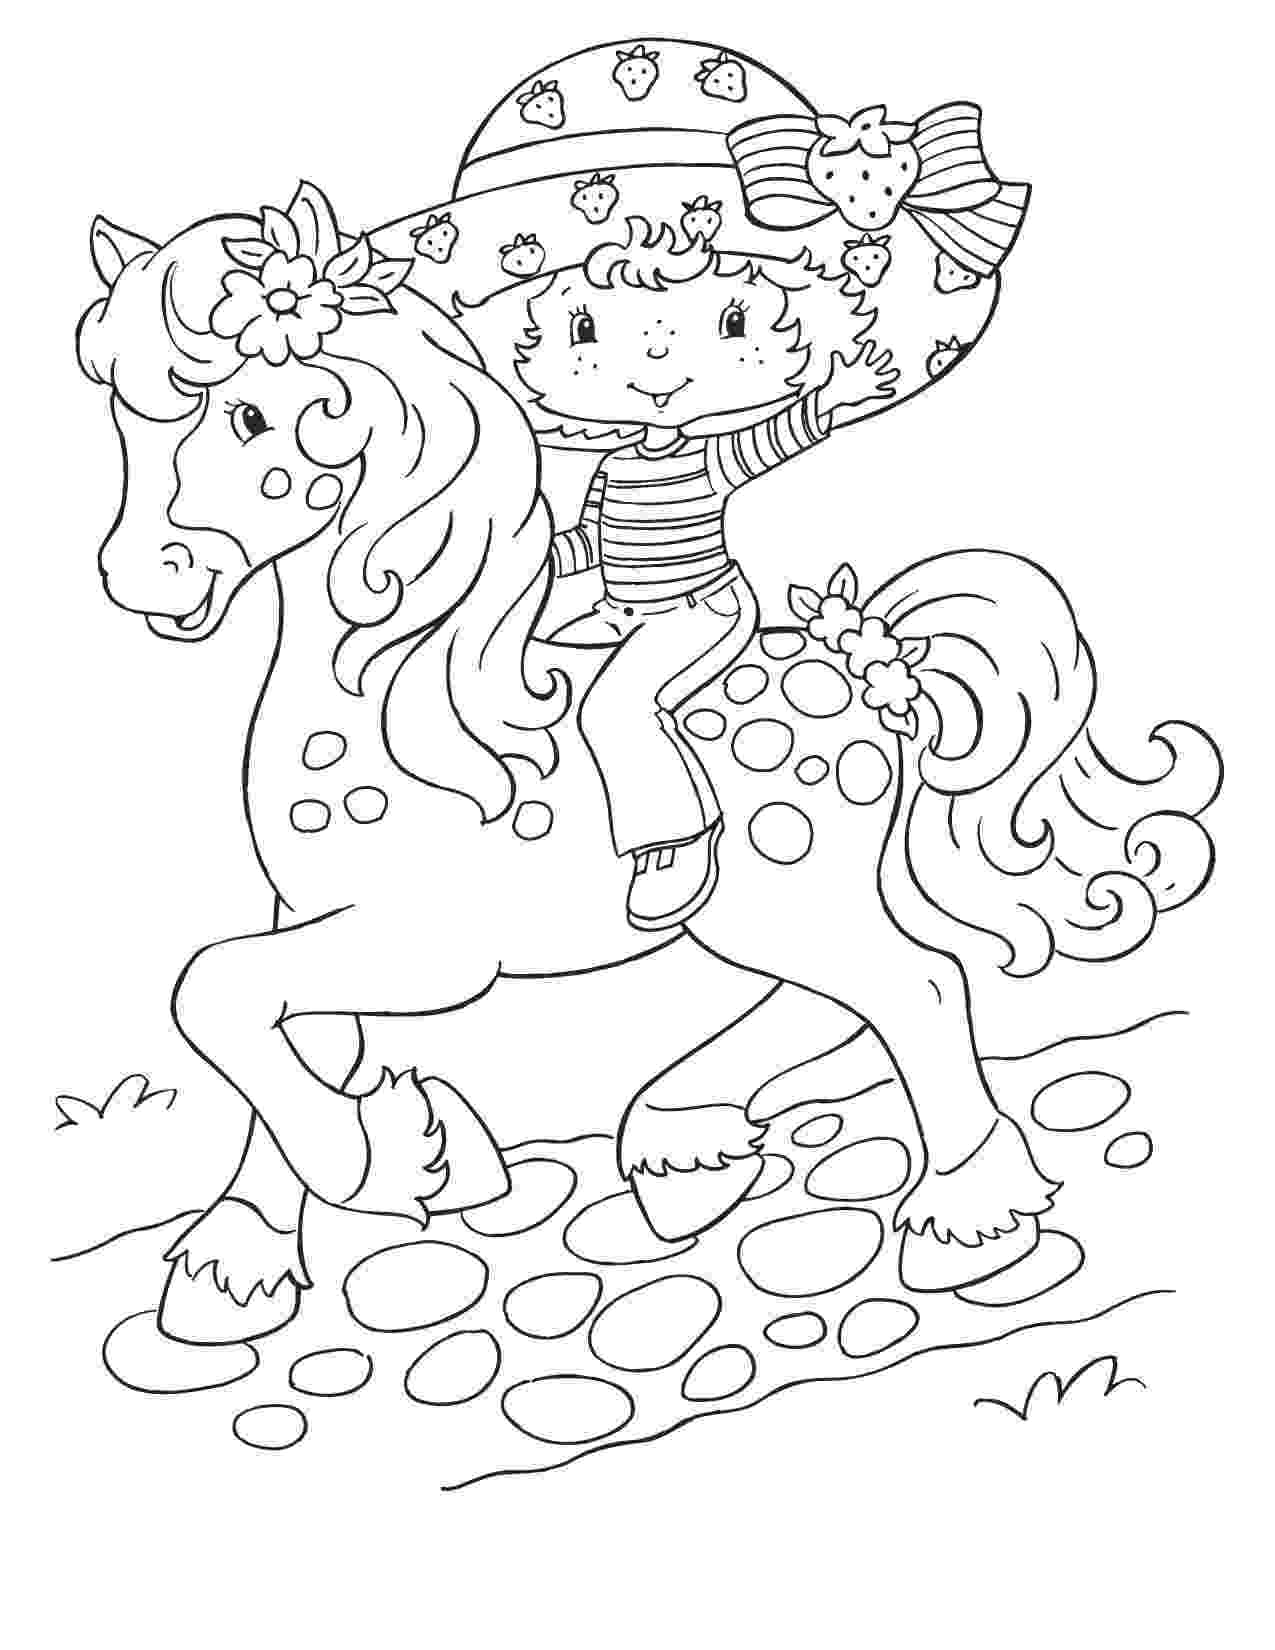 strawberry shortcake printable coloring pages strawberry shortcake coloring pages getcoloringpagescom strawberry printable pages coloring shortcake